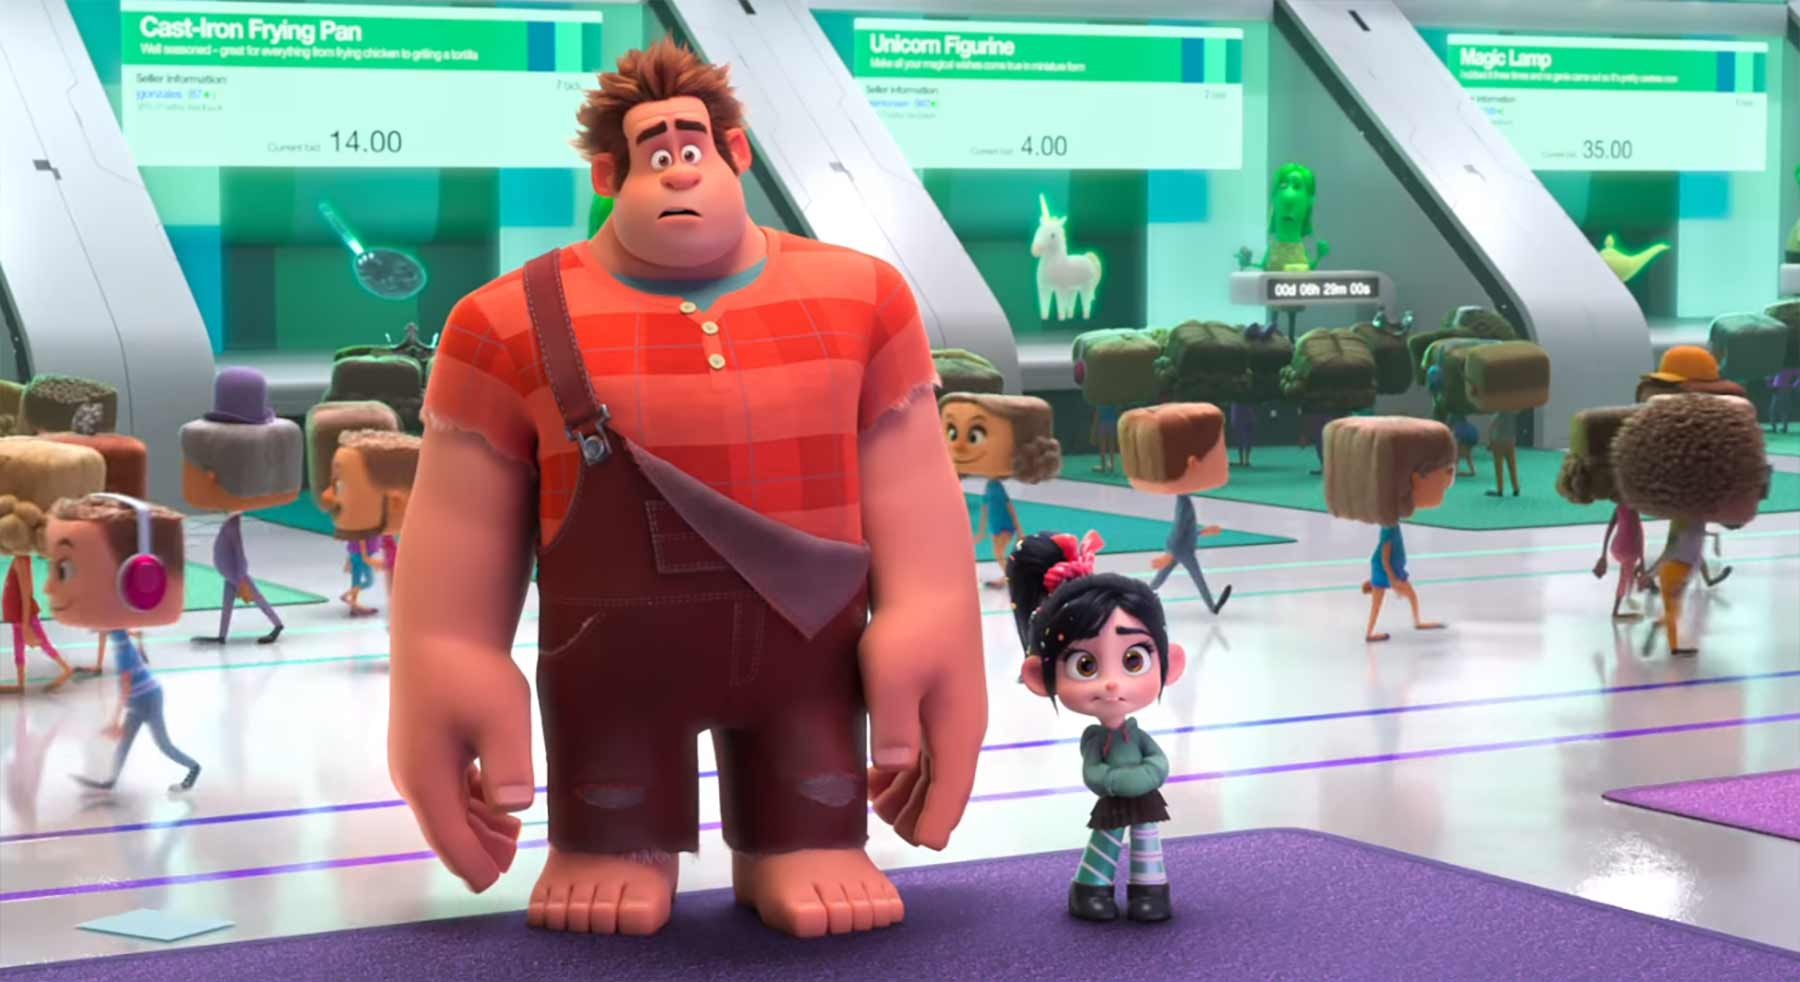 Wreck-It Ralph 2: Erster Teaser-Trailer